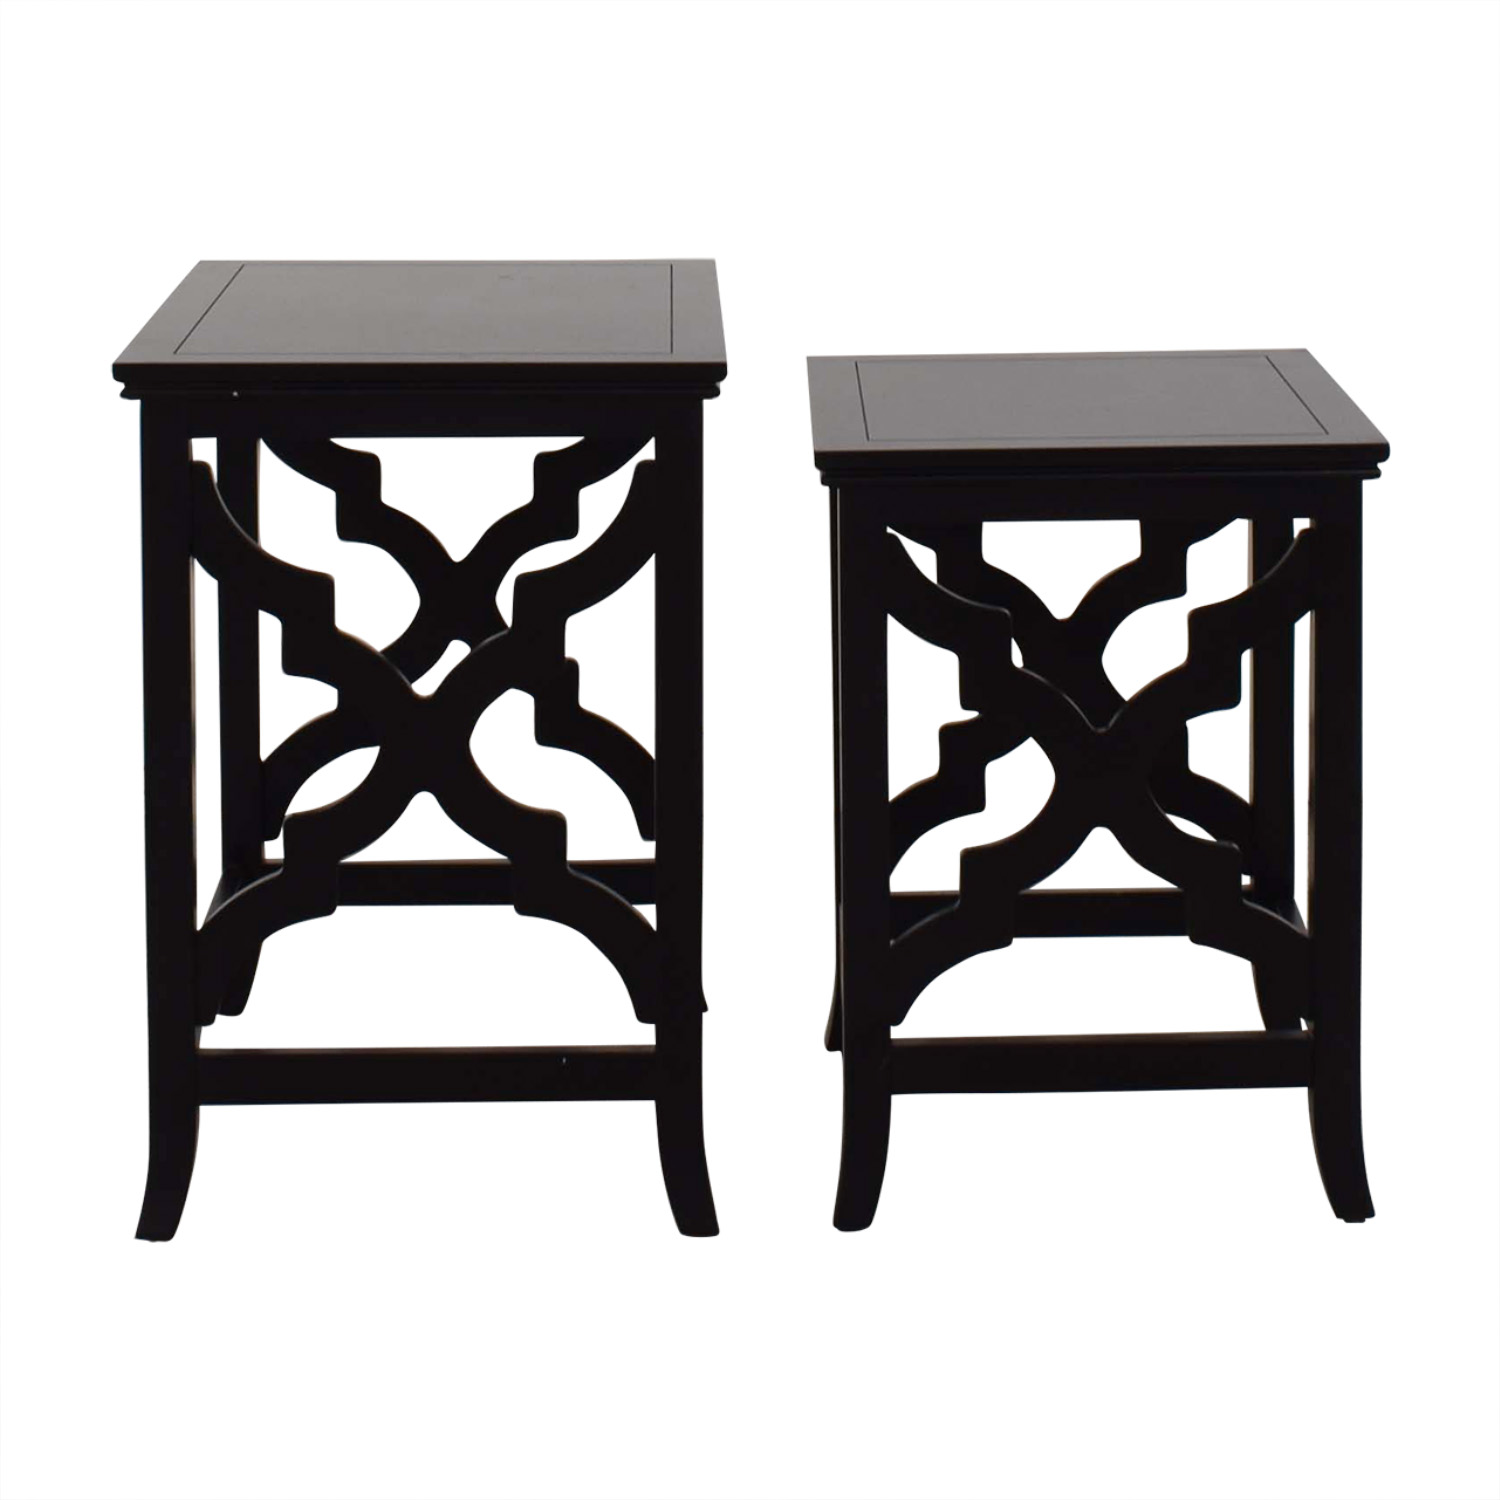 Raymour & Flanigan Raymour & Flanigan Wooden Nesting Side Tables for sale